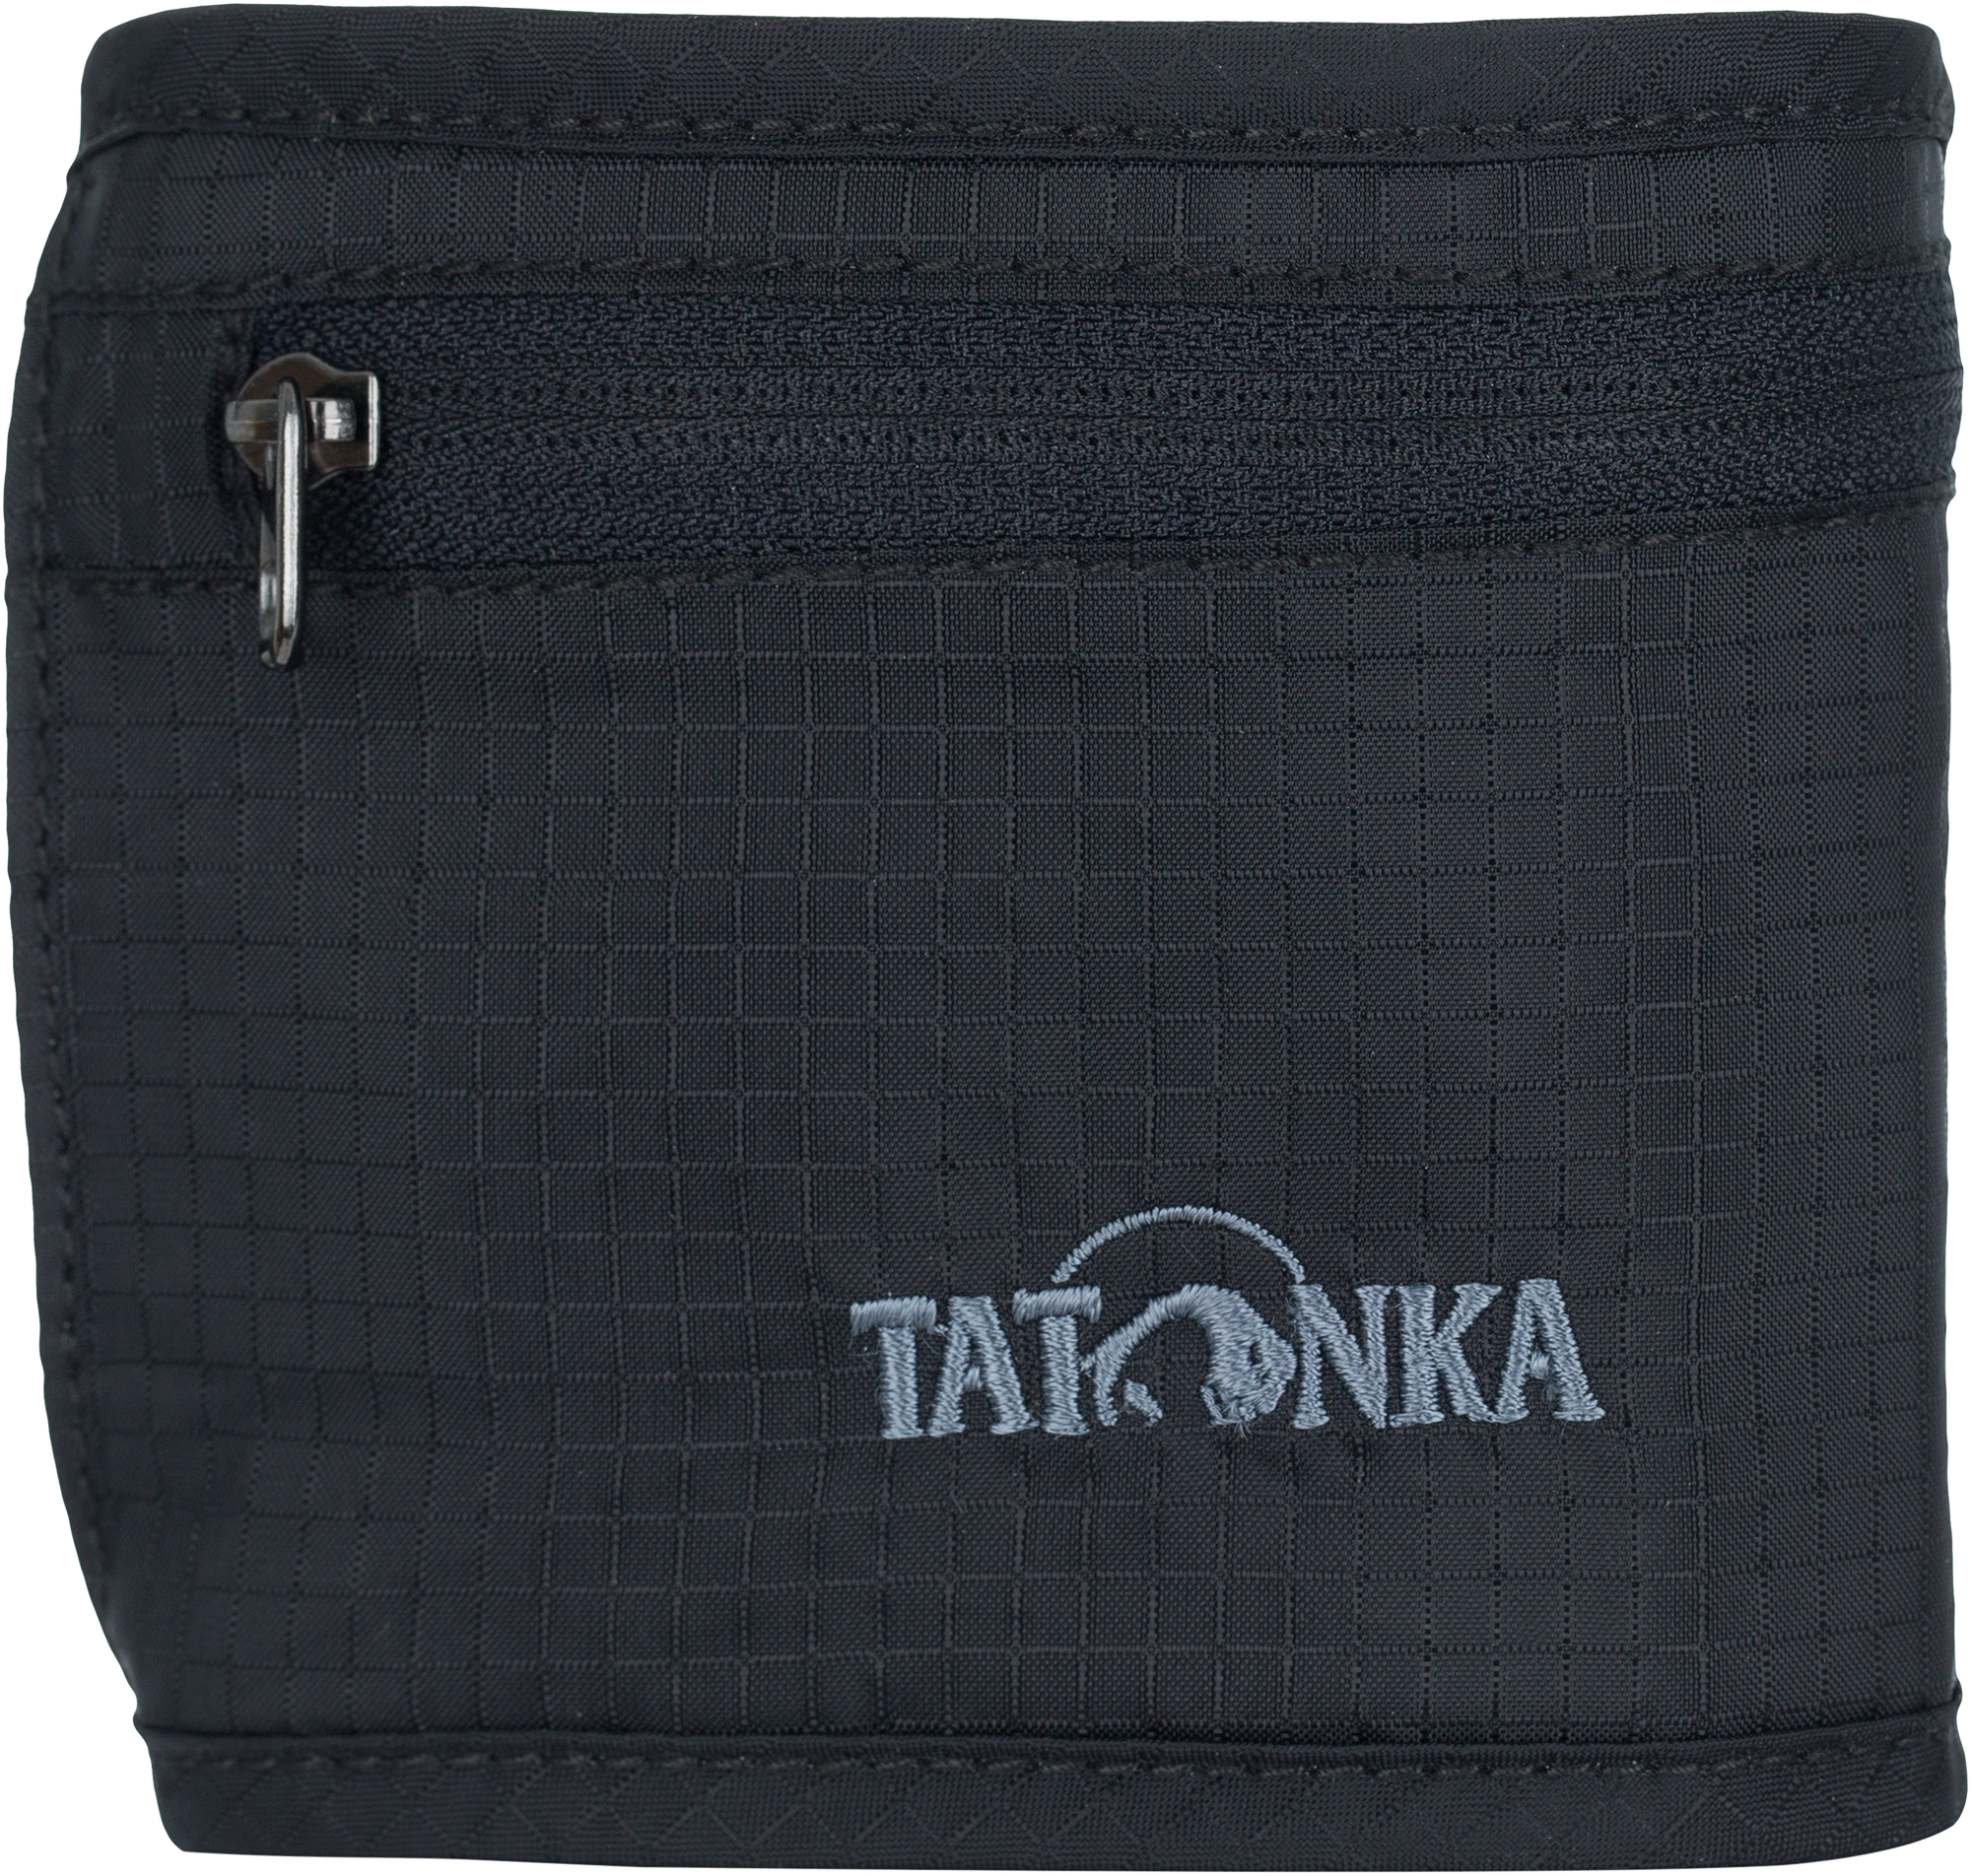 Tatonka Кошелек Tatonka SKIN WRIST WALL кошелек tatonka travel wallet цвет синий 2915 004